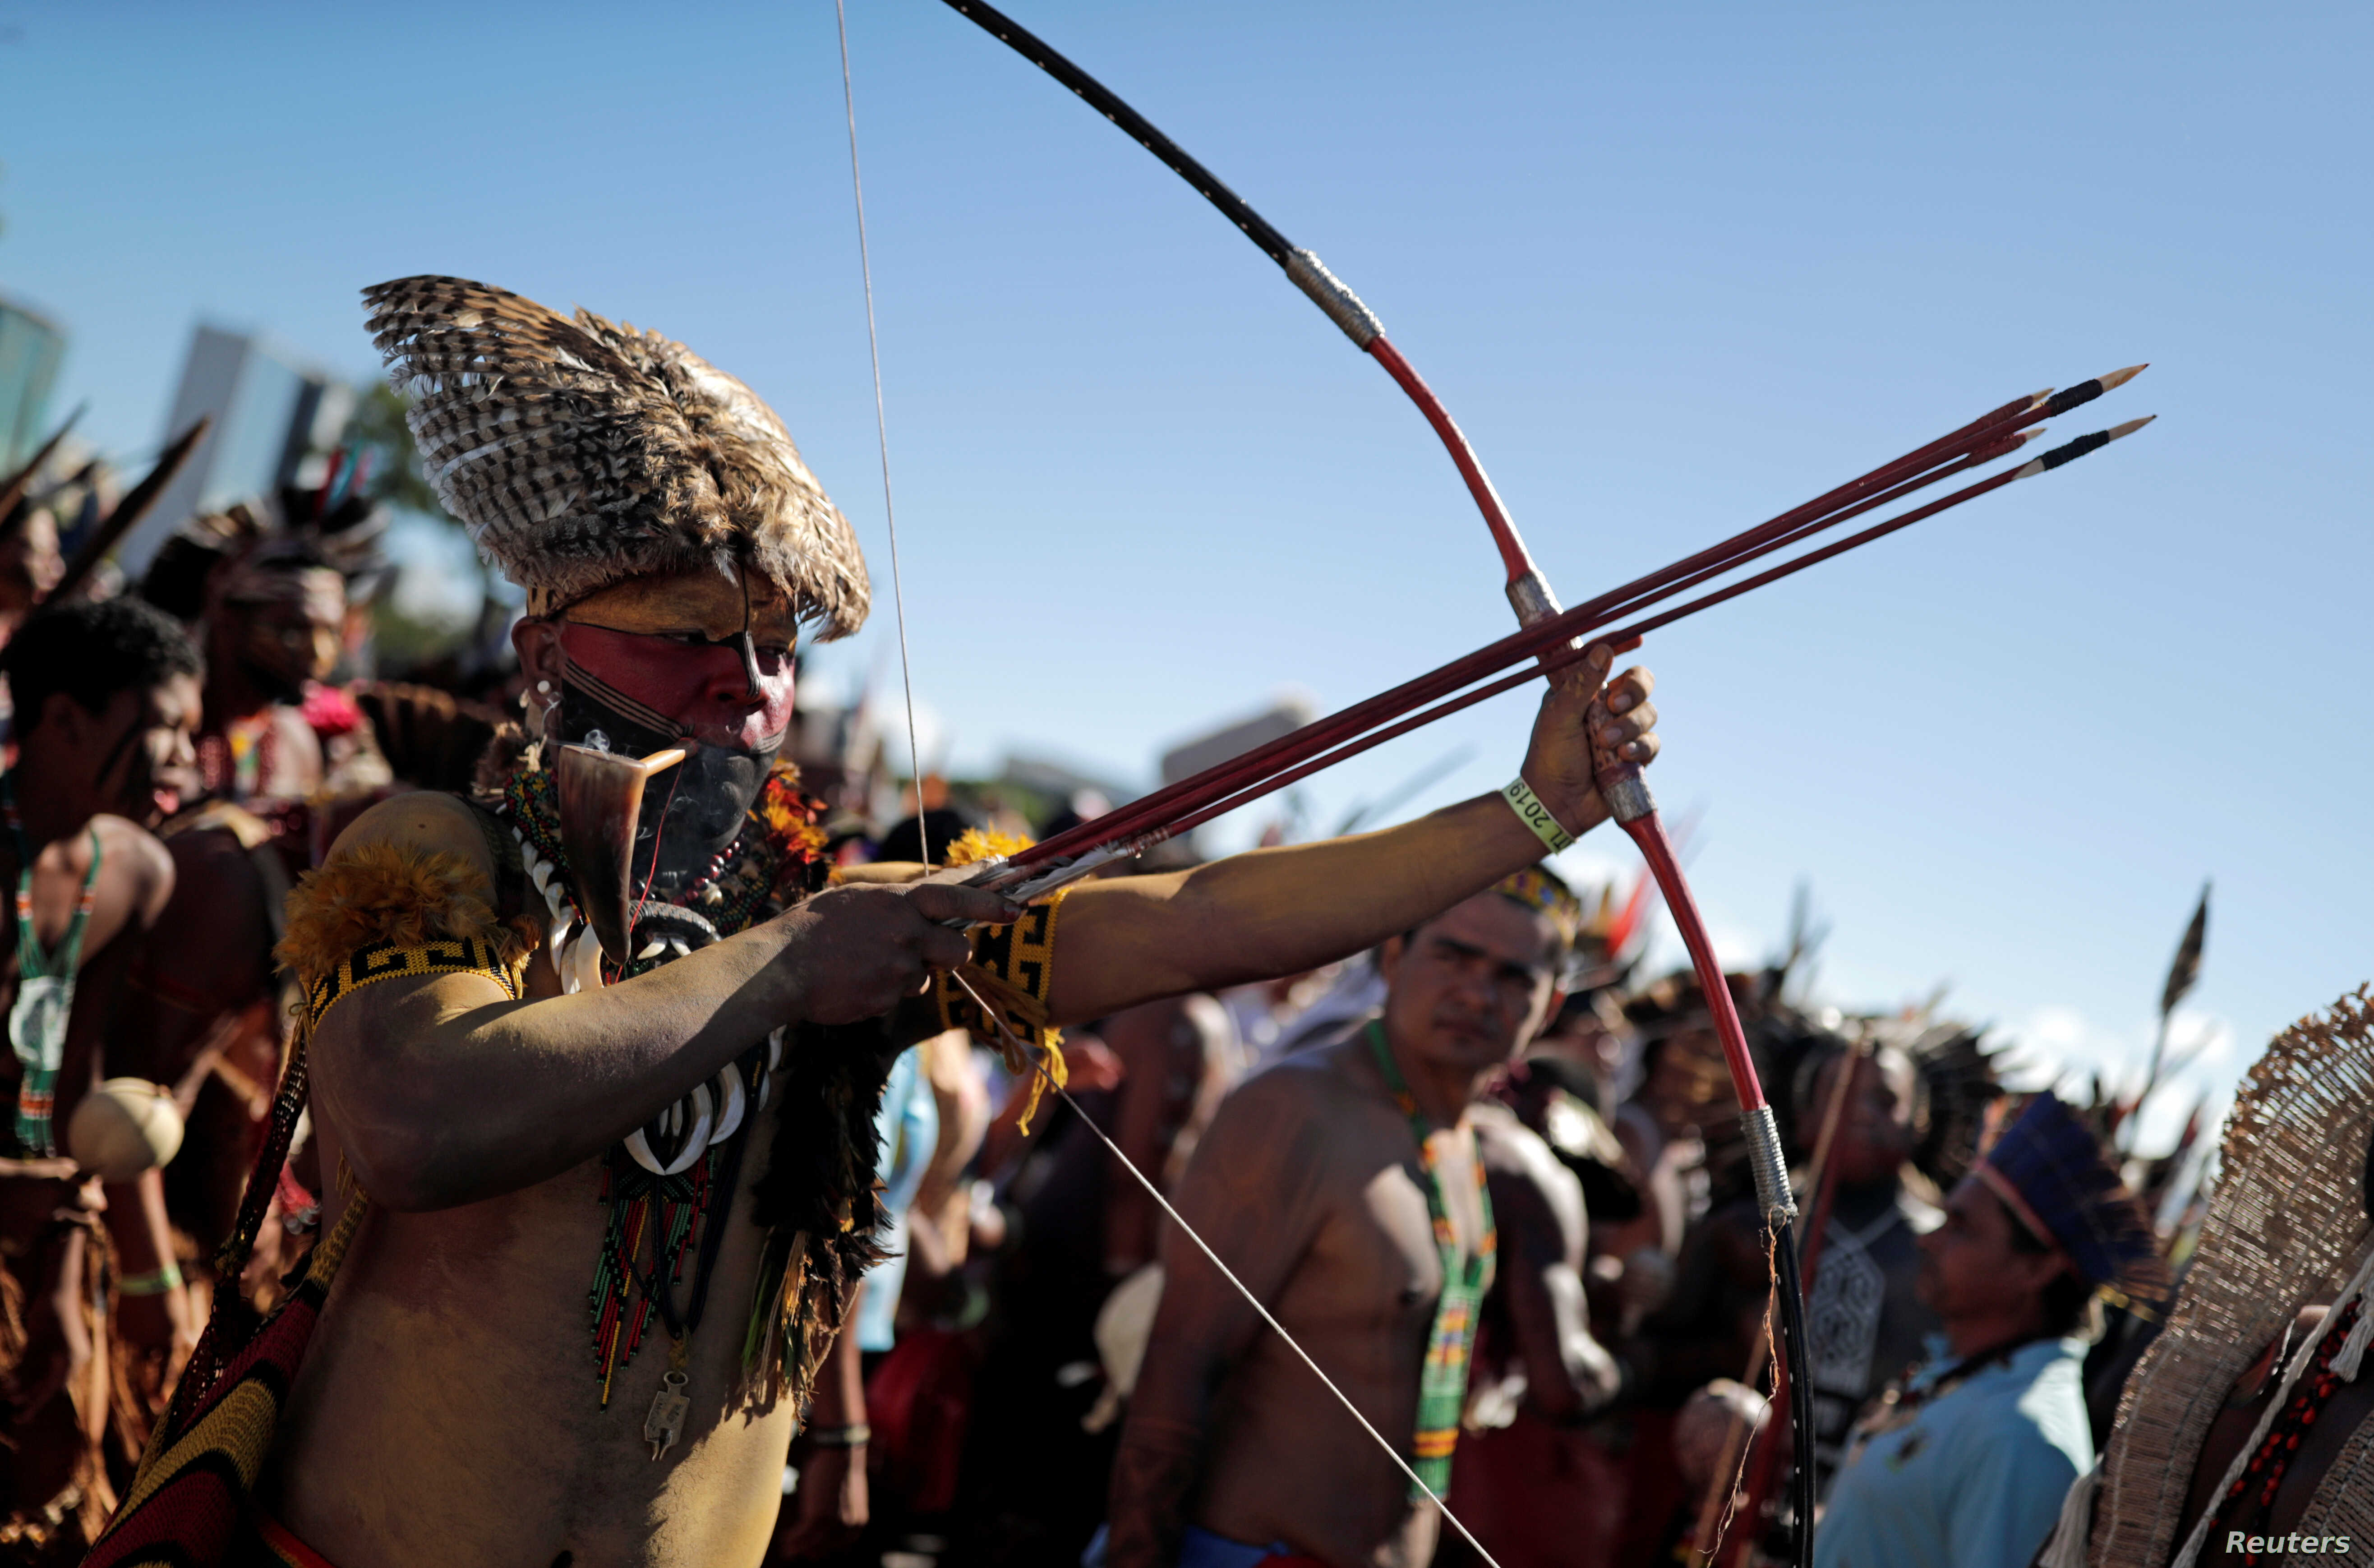 A member of an indigenous tribe holds a bow and arrows during a protest to defend land and cultural rights that indigenous people say are threatened by the government of Brazil's President Jair Bolsonaro, in Brasilia, April 26,